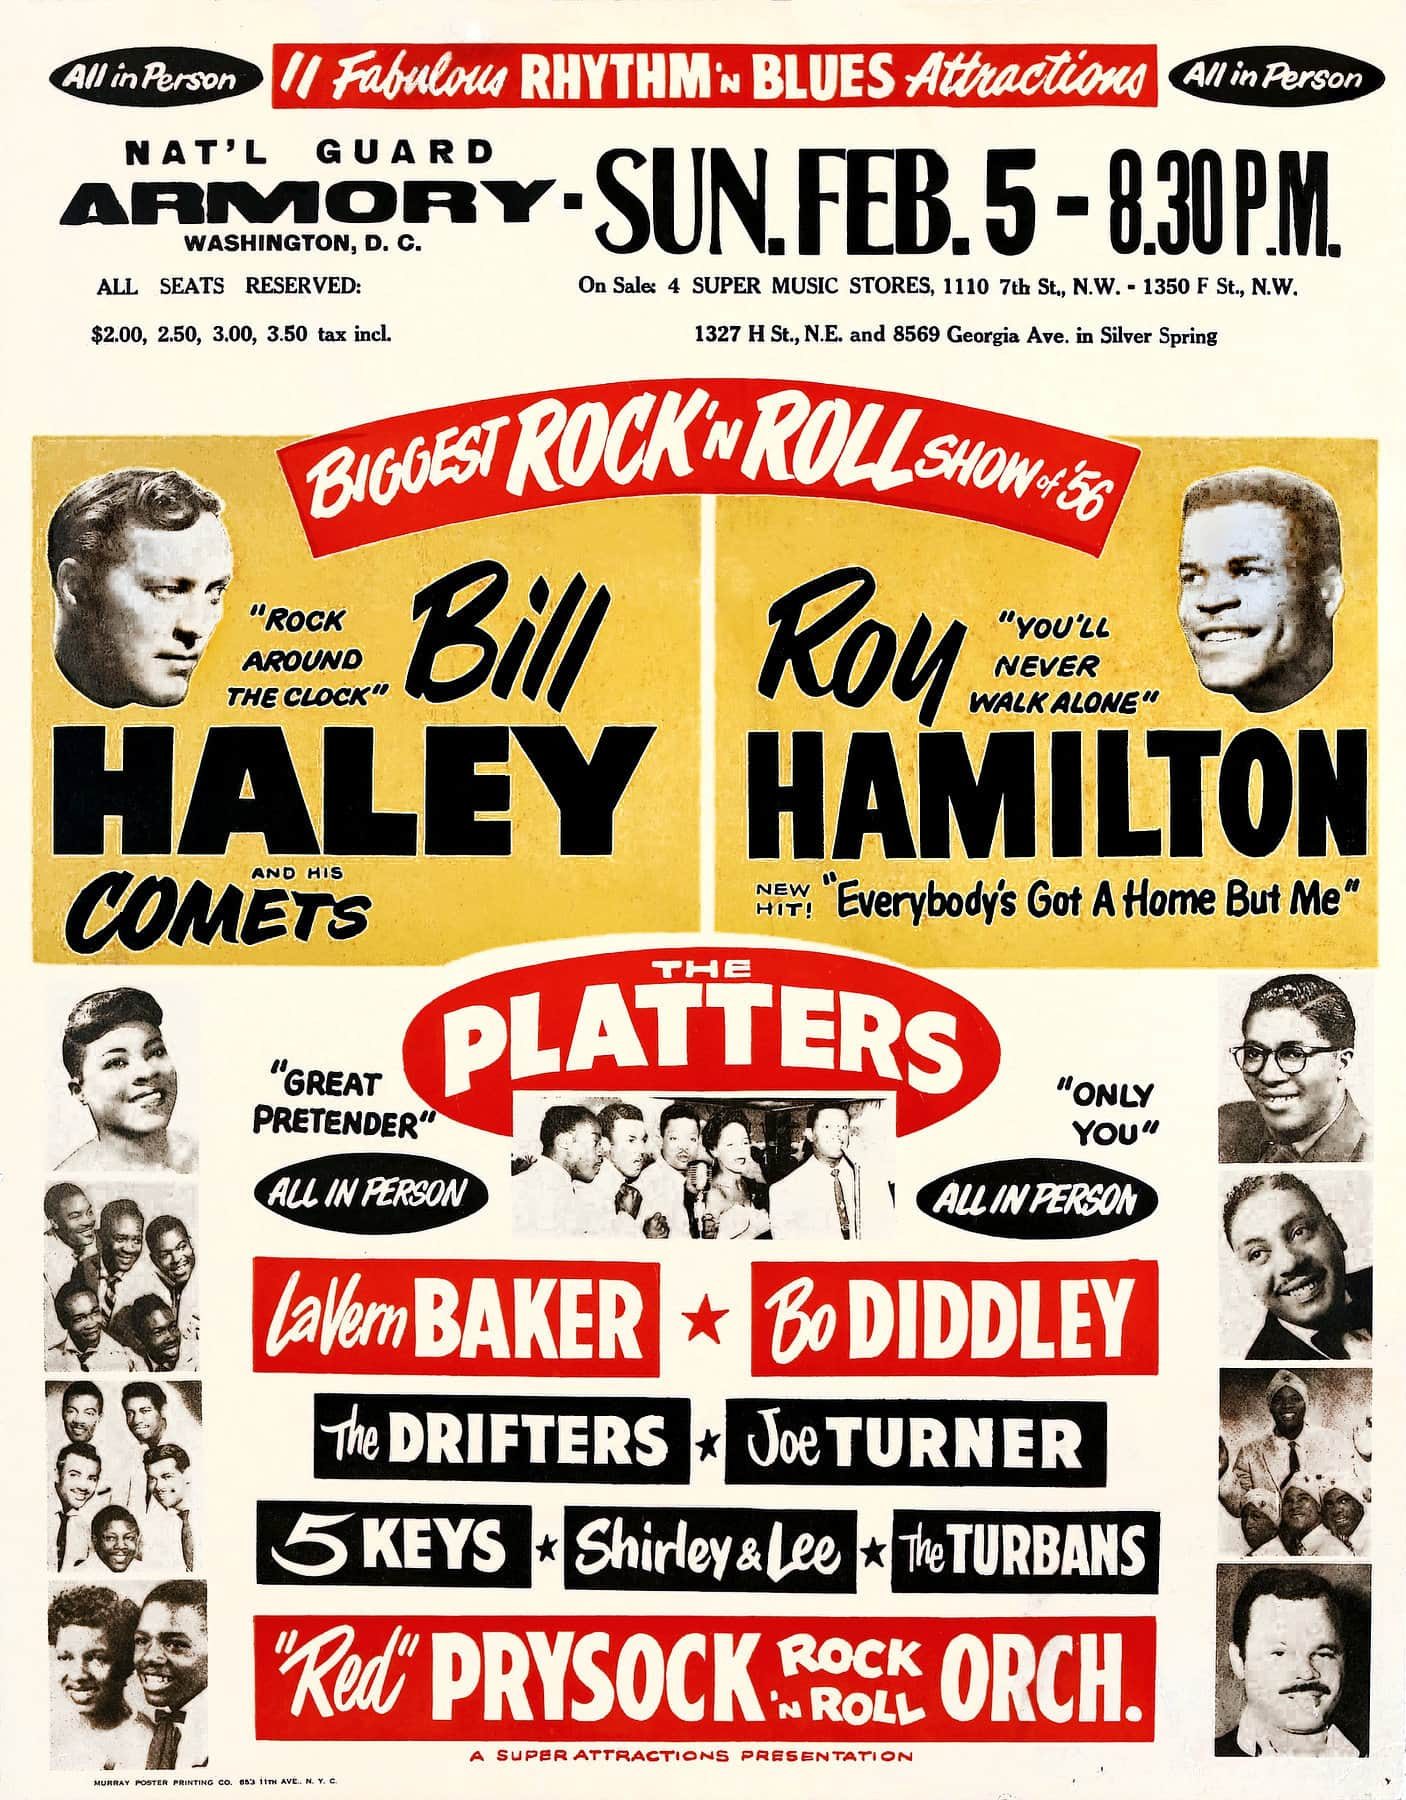 1956 Bill Haley and his Comets - Roy Hamilton Rock 'n Roll Show